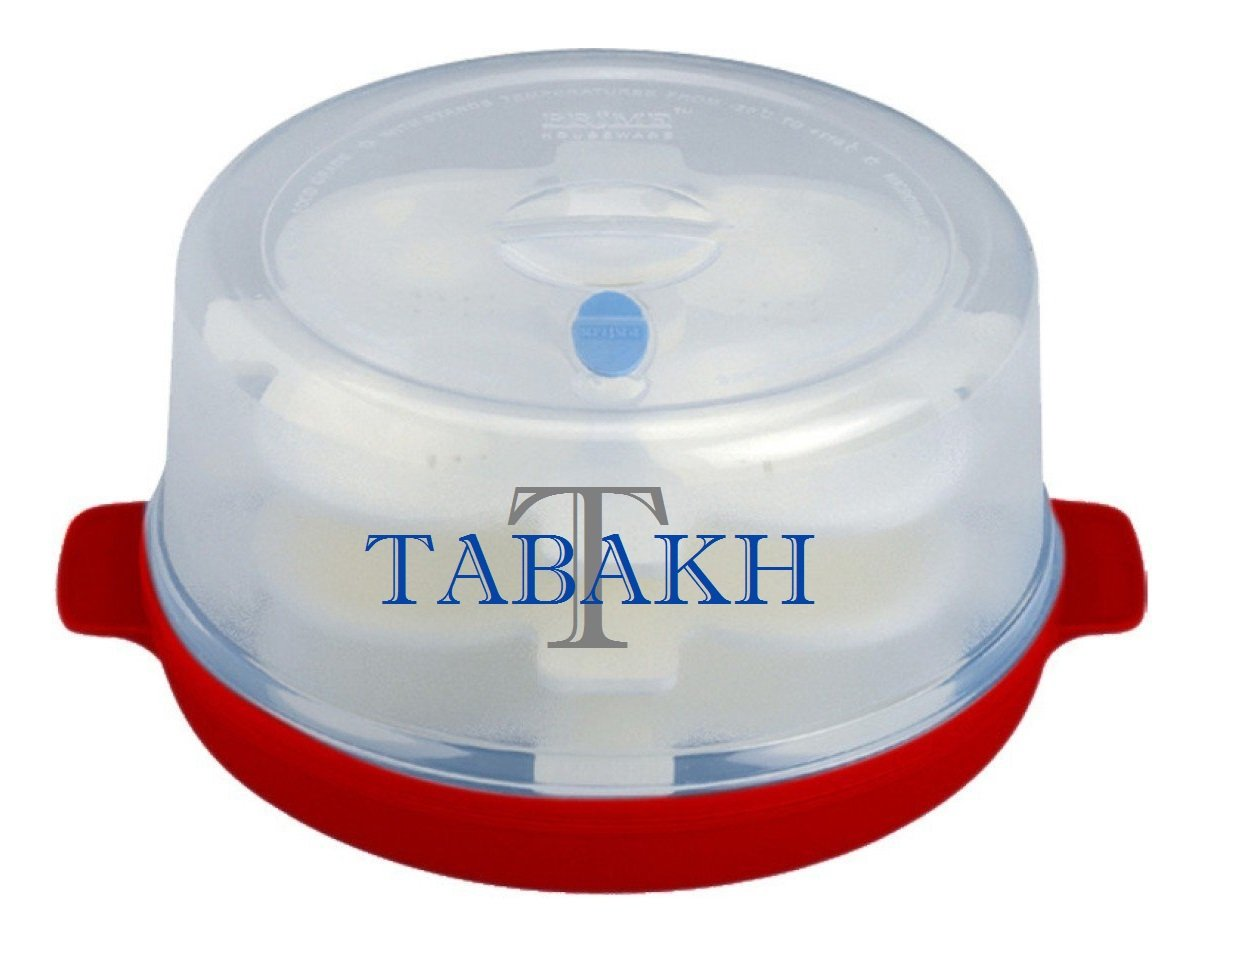 Tabakh Prime 3-Rack Microwave Idly Maker, Makes 12 Idlis (Color may vary)